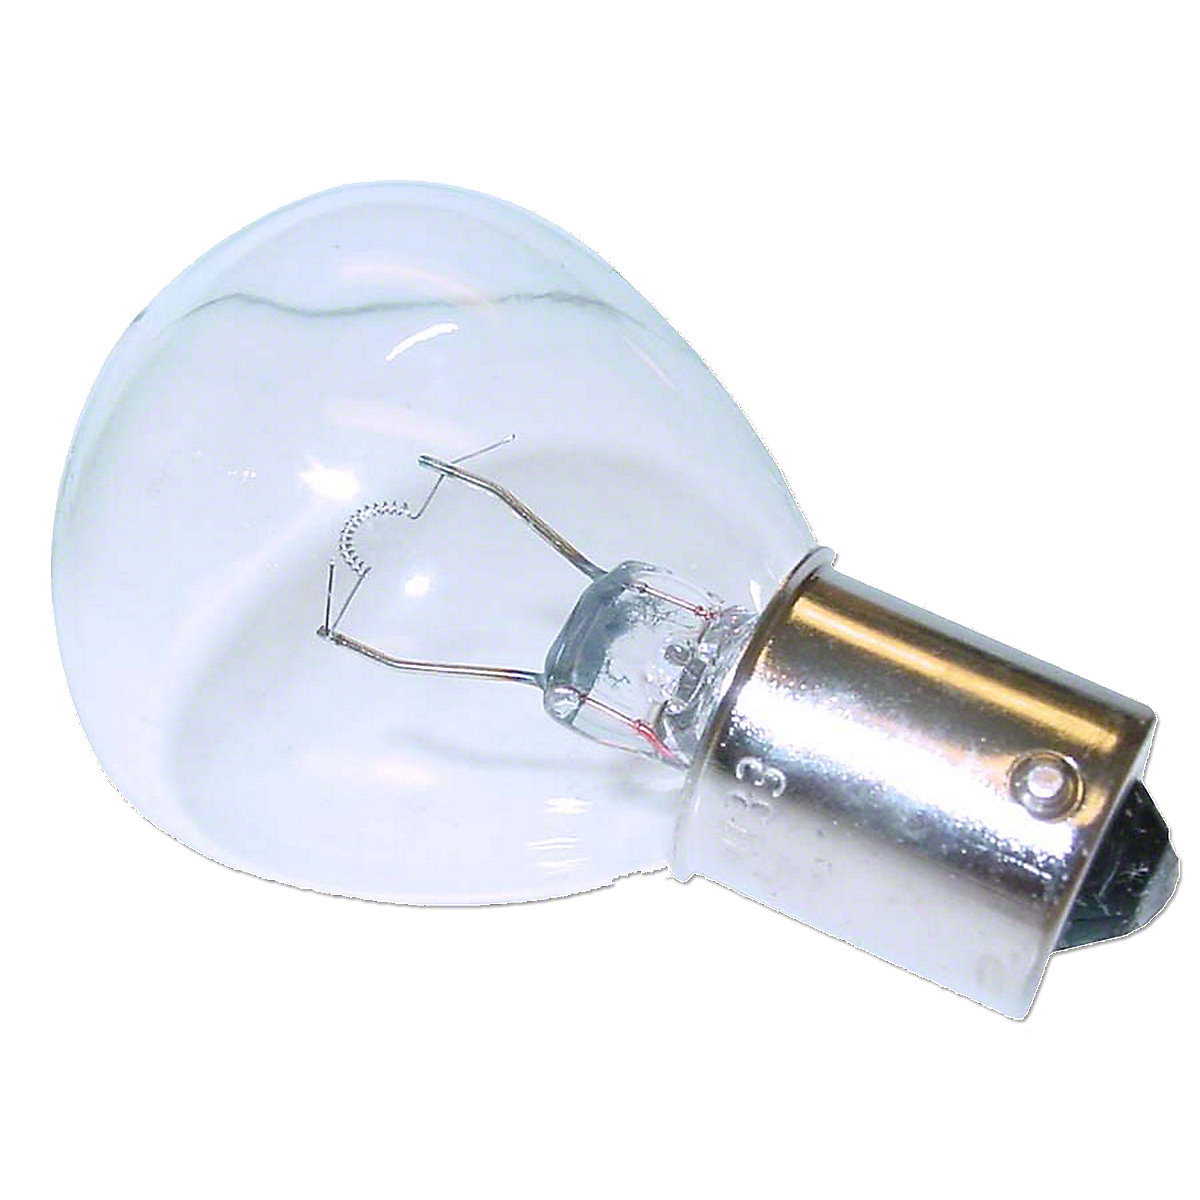 6V Light Bulb For Oliver: Super 44, Super 55, Super 66, Super 77, Super 88, 60, 66, 77, 88. Single Contact Base. Interchangeable With Original Bulb. Fits As A Headlight Or A Rear Combo Light Bulb.